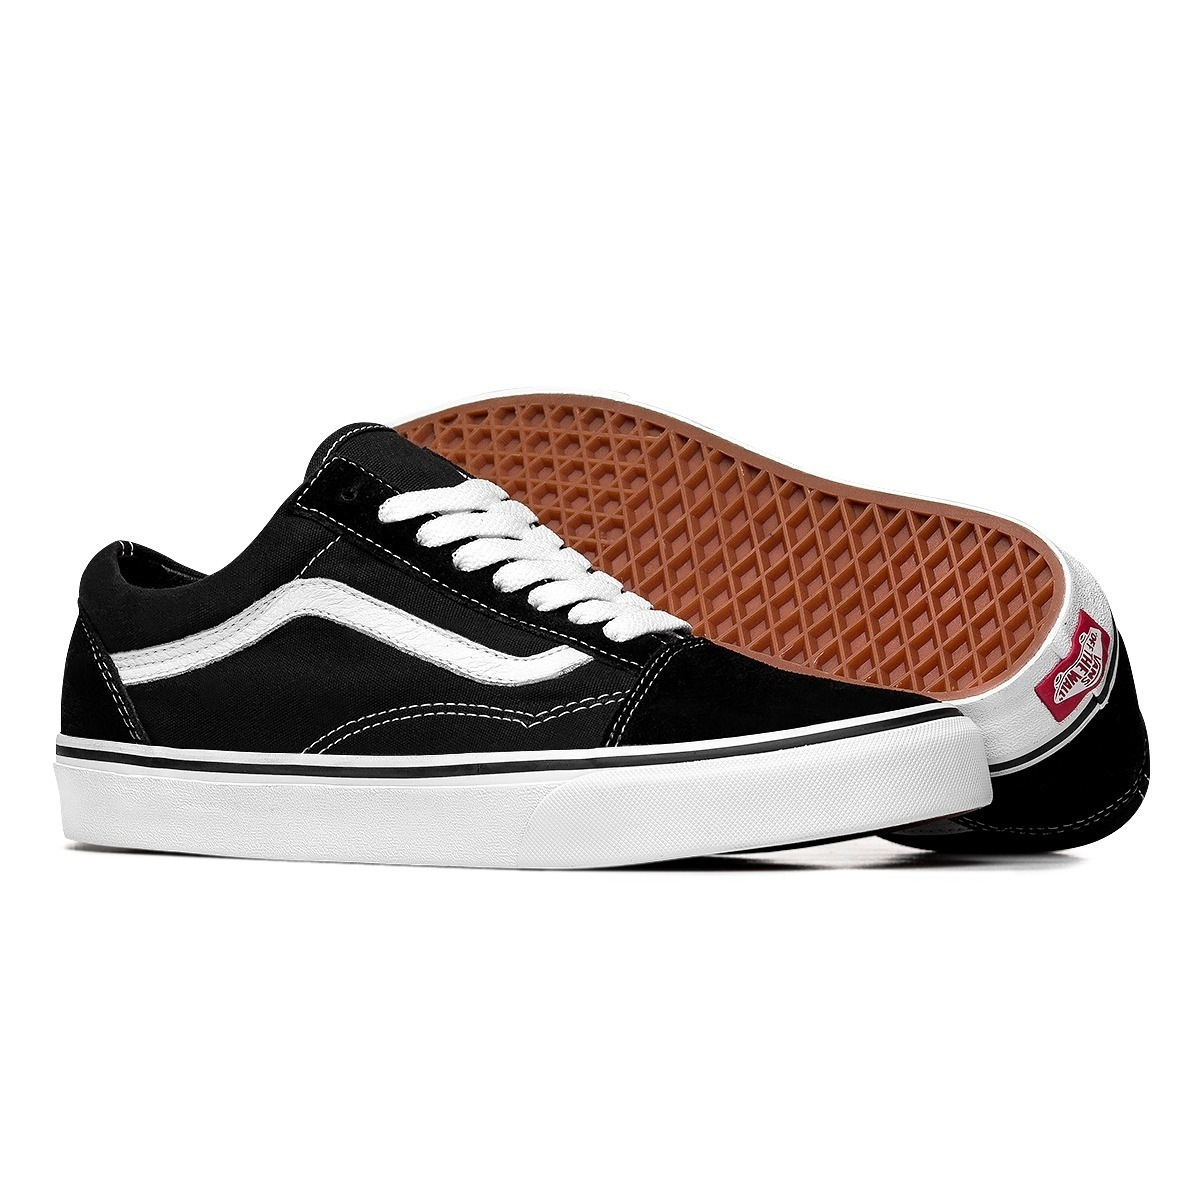 326edcb344 tênis vans classic u authentic original - barato. Carregando zoom.